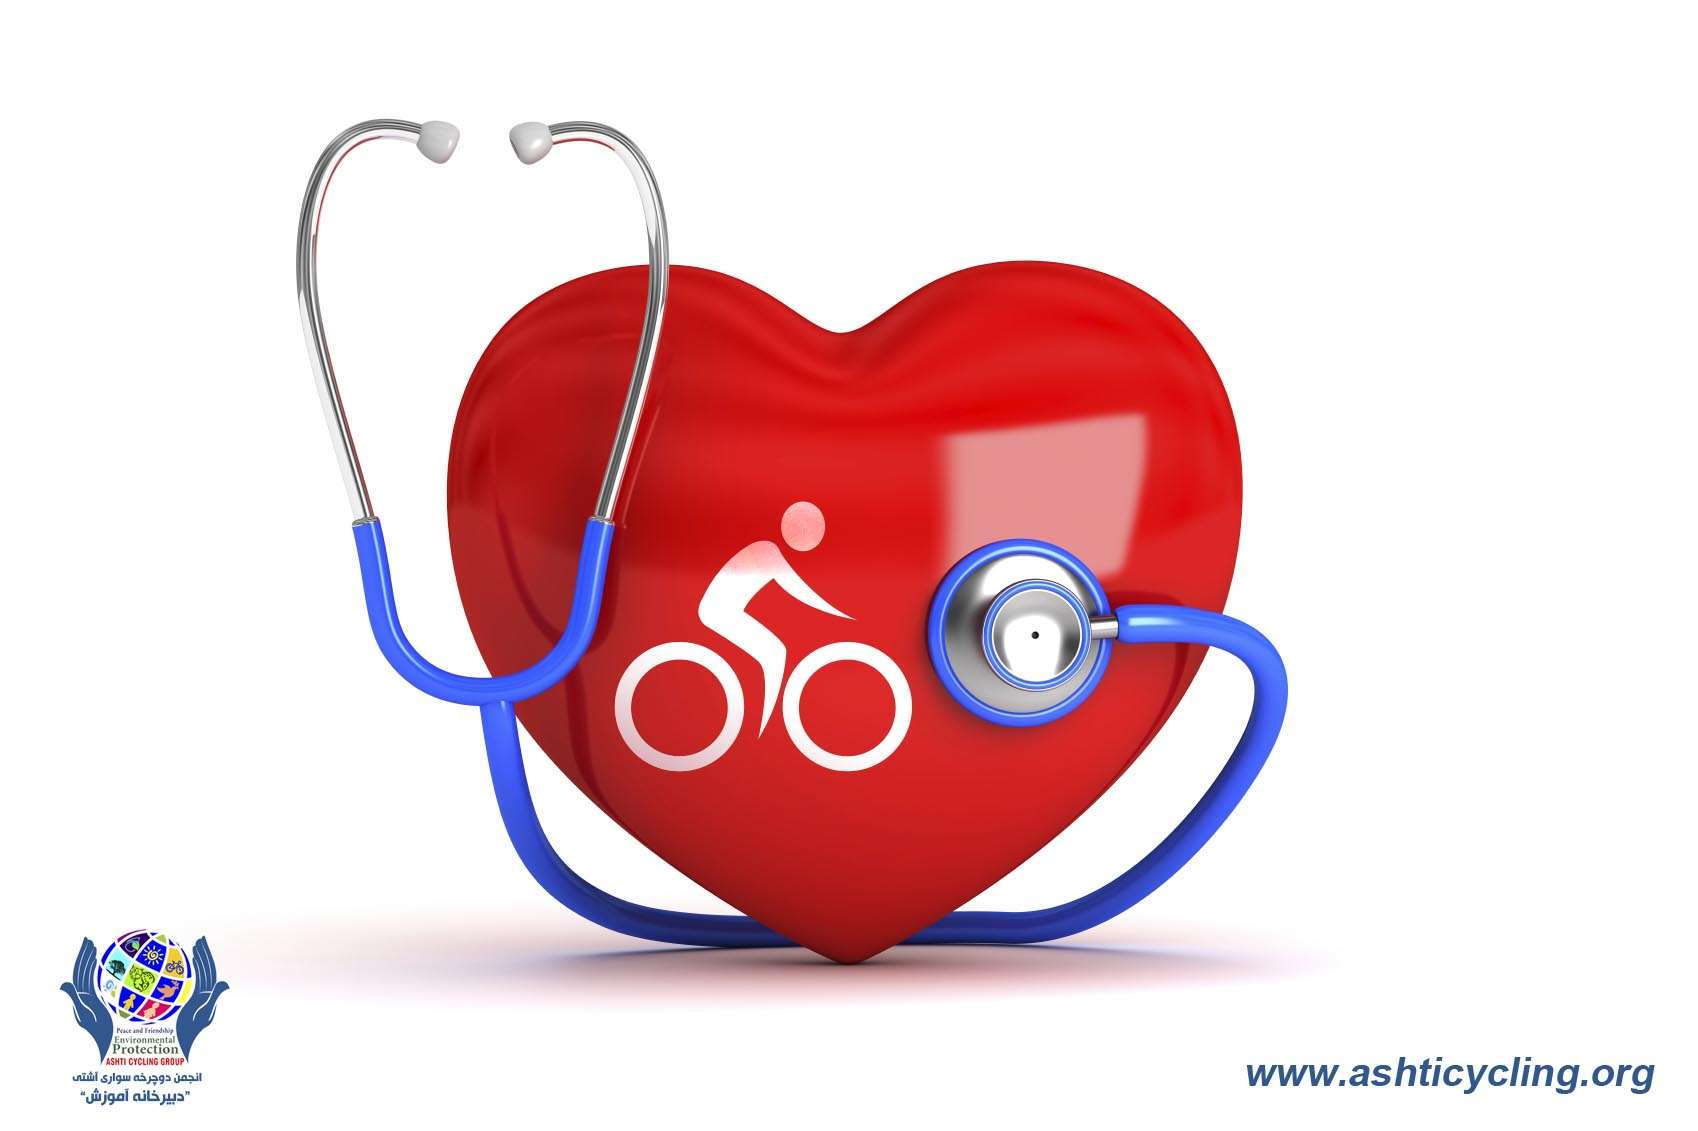 healthy-heart-istock_000011417398medium